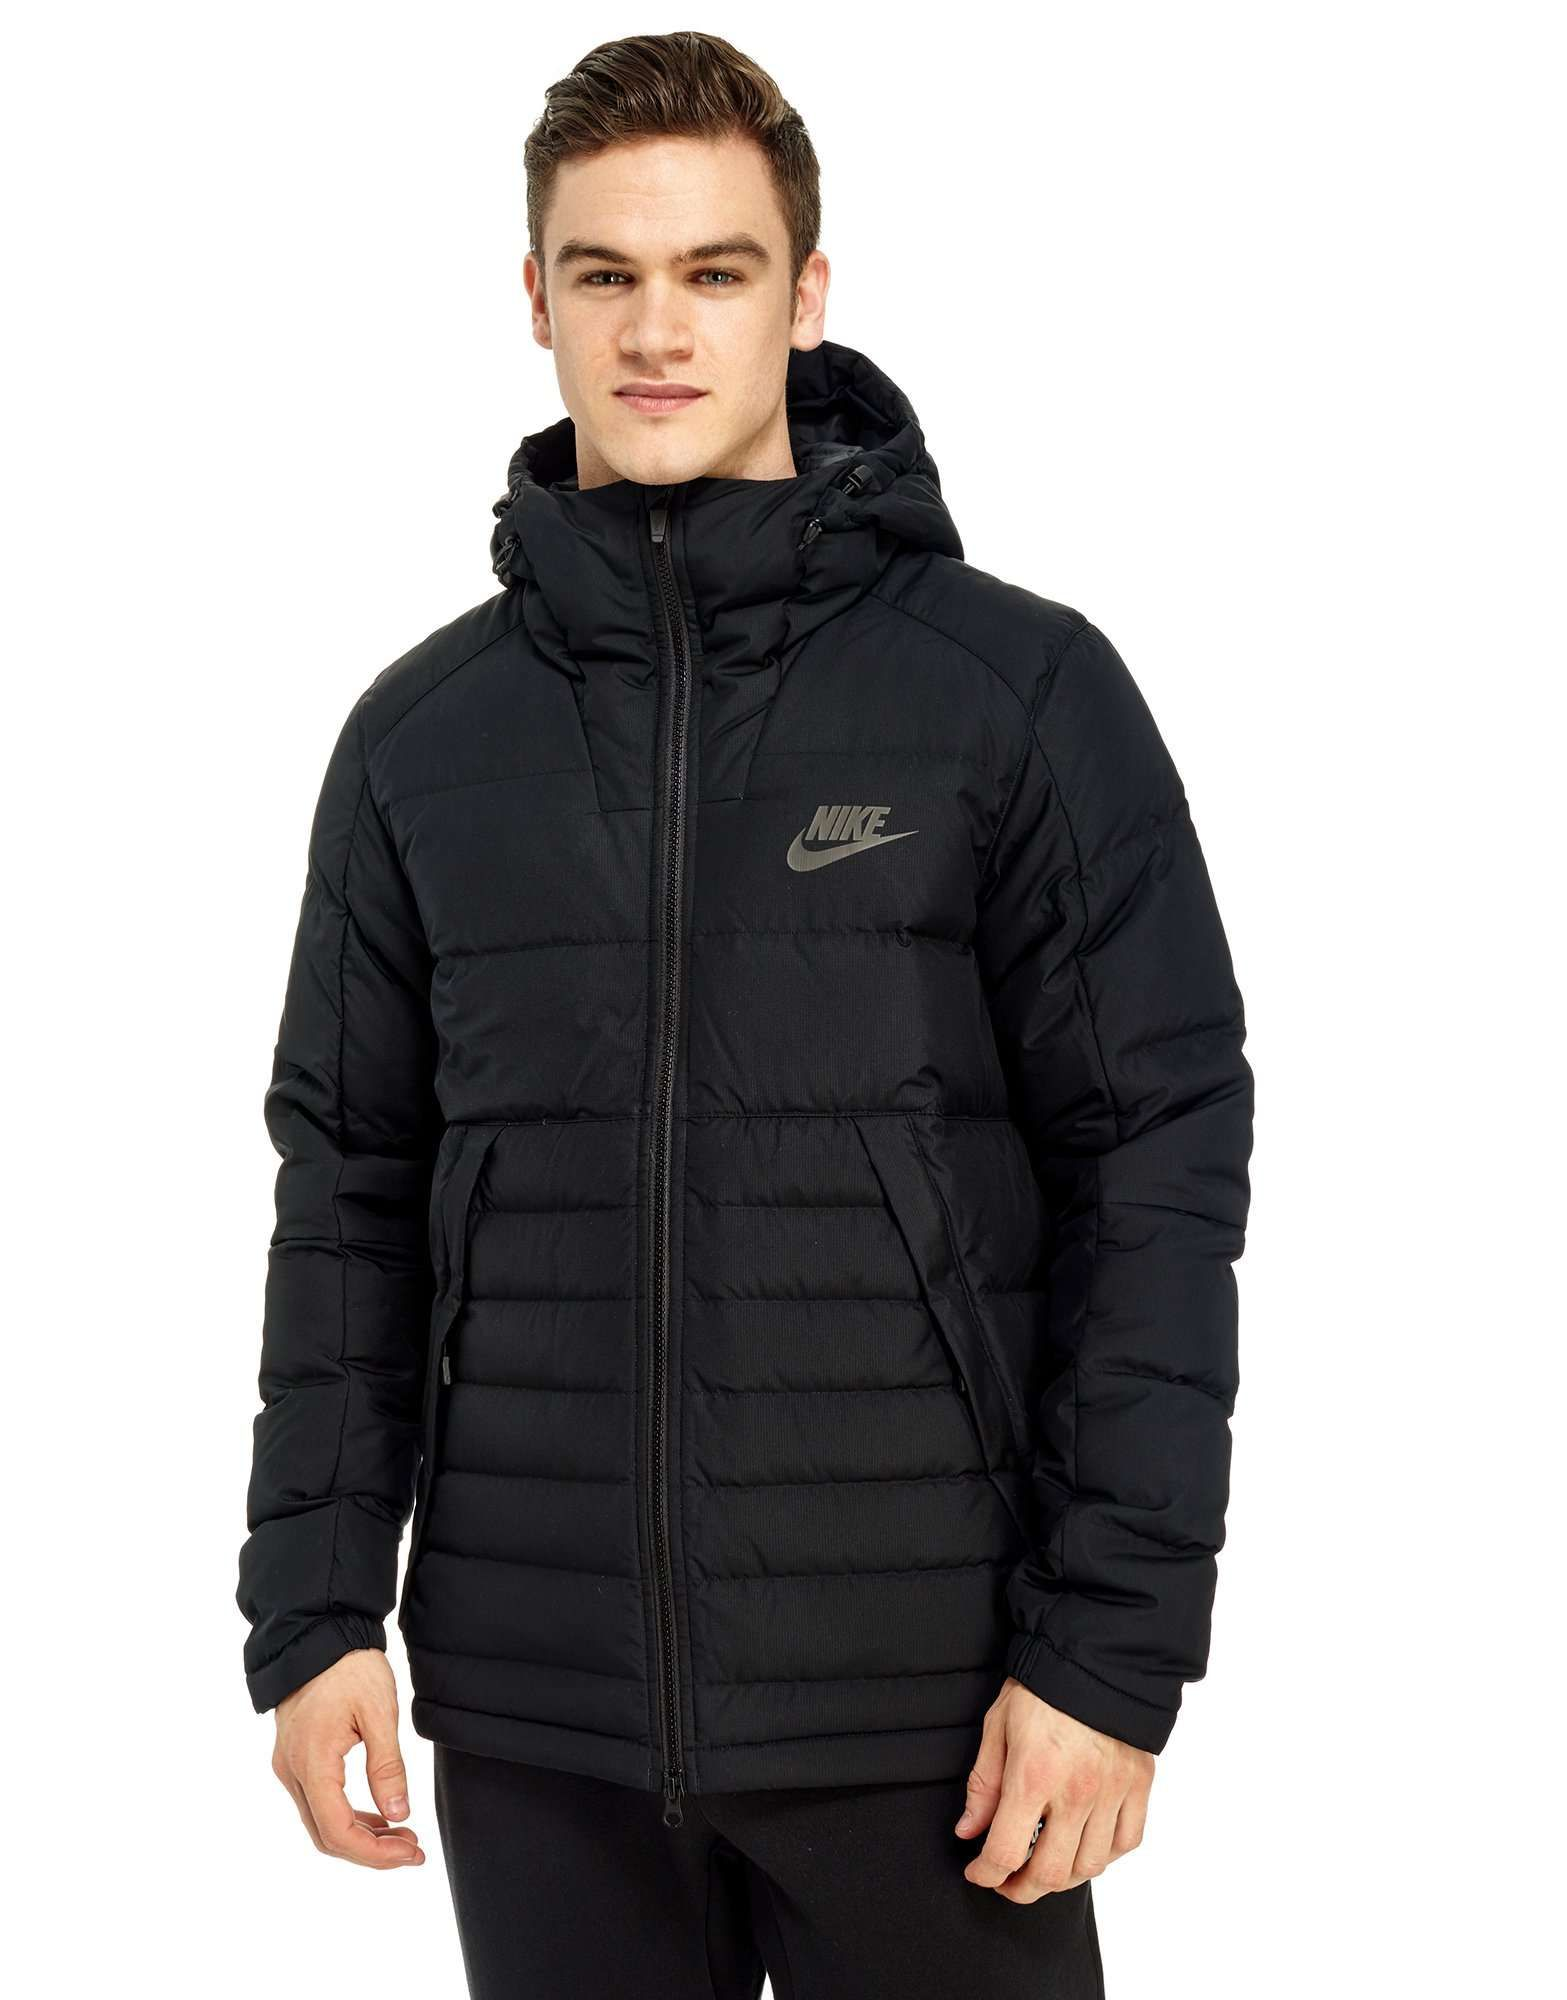 a4078974af1 Nike Padded Down Jacket - Shop online for Nike Padded Down Jacket with JD  Sports